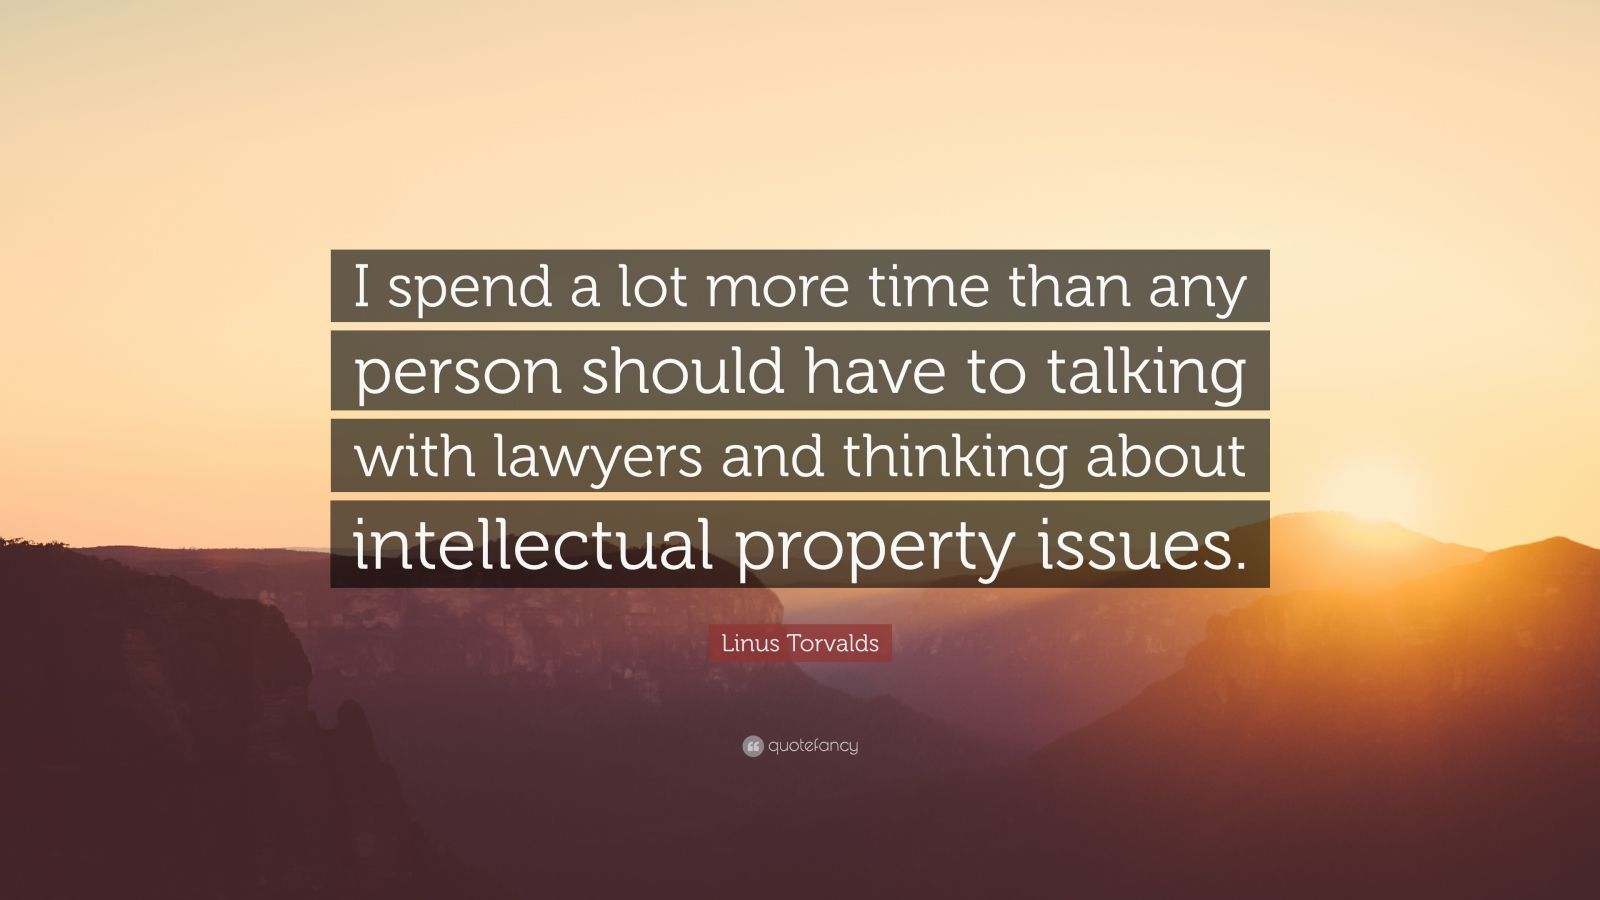 """Linus Torvalds Quote: """"I spend a lot more time than any person should have to talking with lawyers and thinking about intellectual property issues."""""""